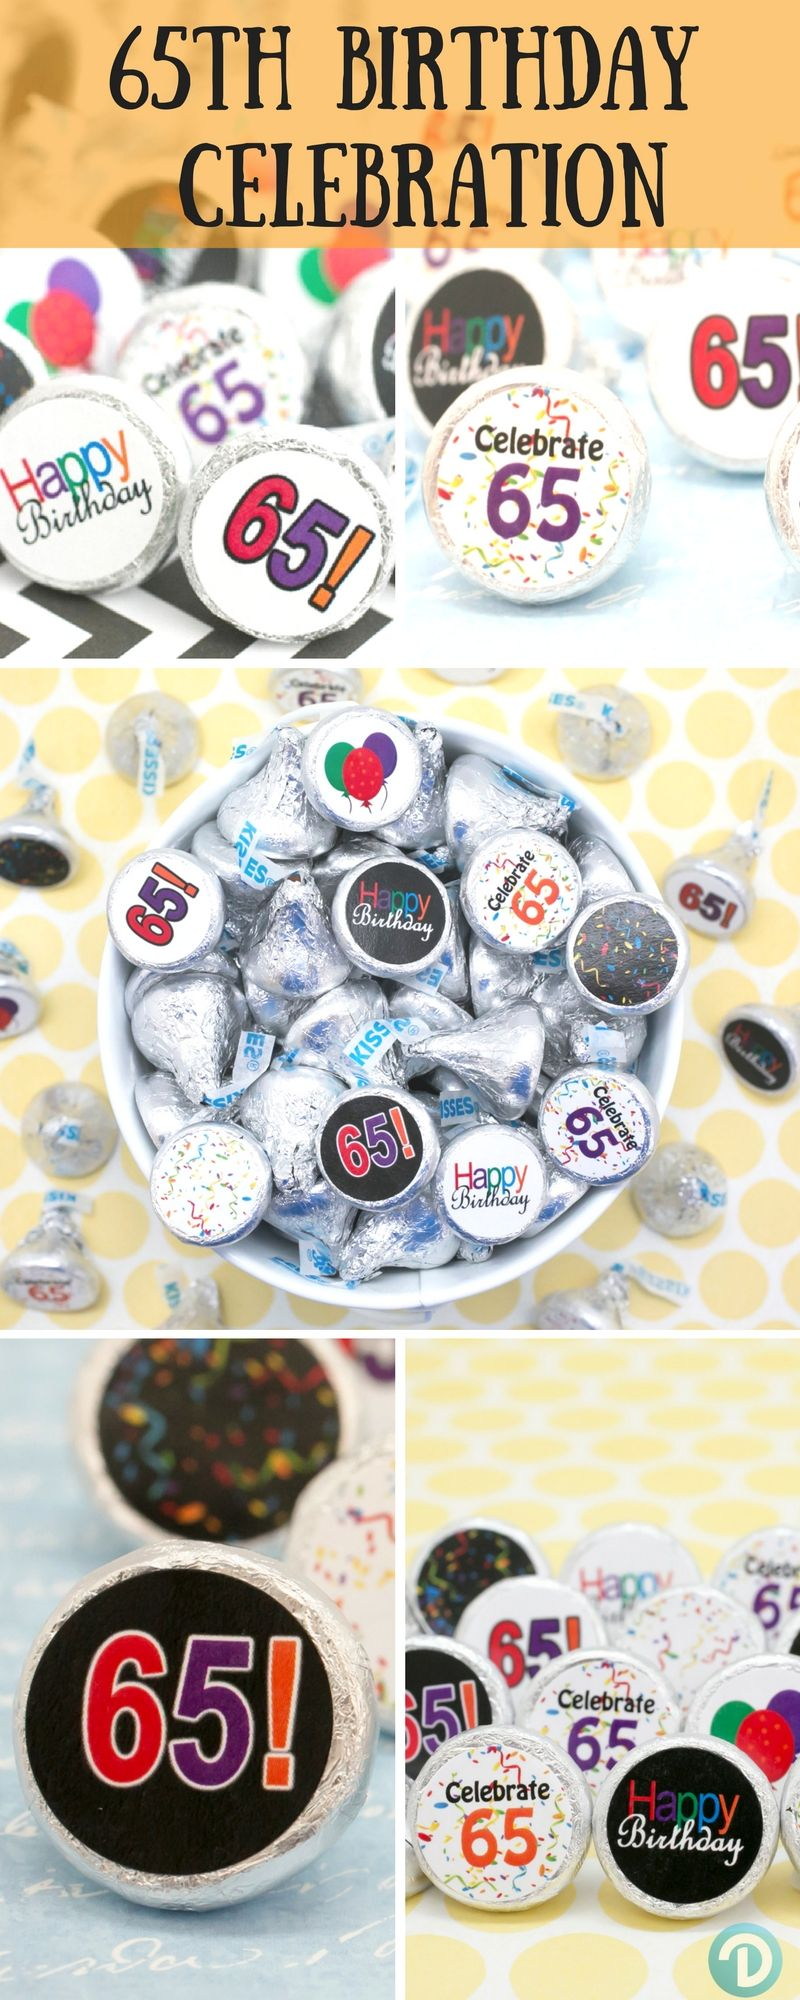 Celebrate Turning 65 Create Cool And Delicious Party Favors Or Table Decorations Everyone Will Love With Our Happy 65th Birthday Celebration Stickers